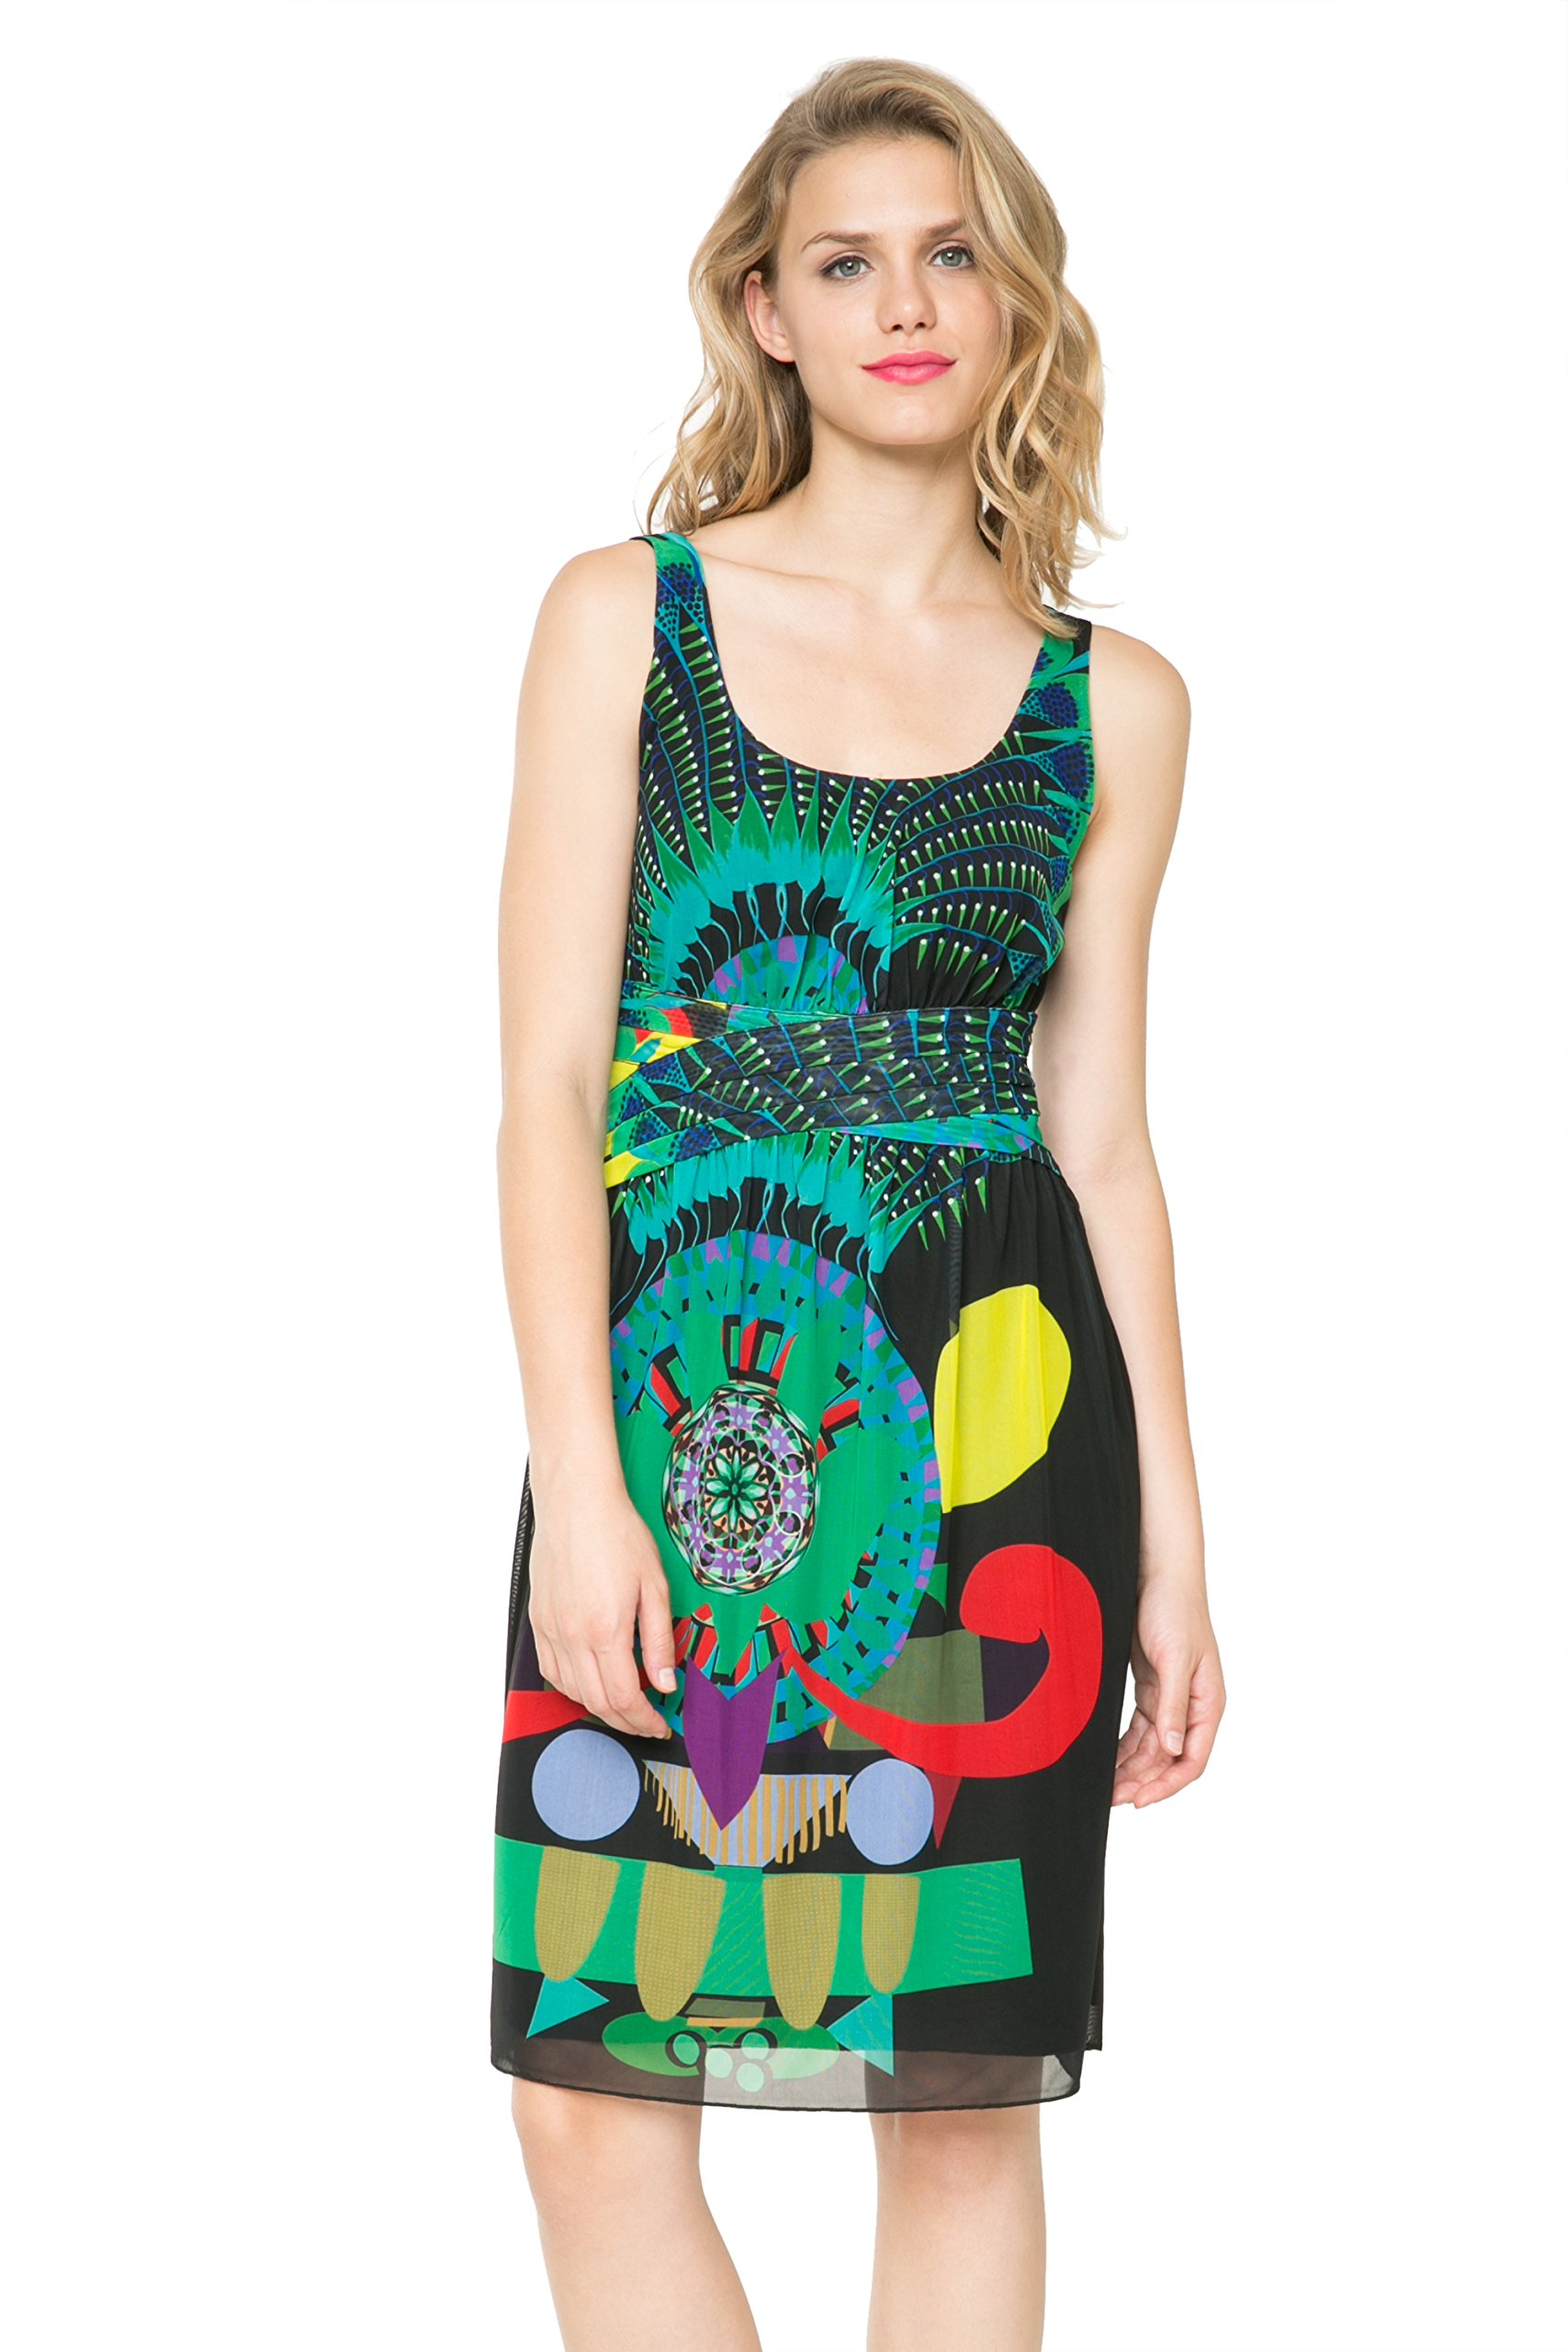 Desigual by L Women's Black Celia Multicolour Hourglass Dress S UK 10